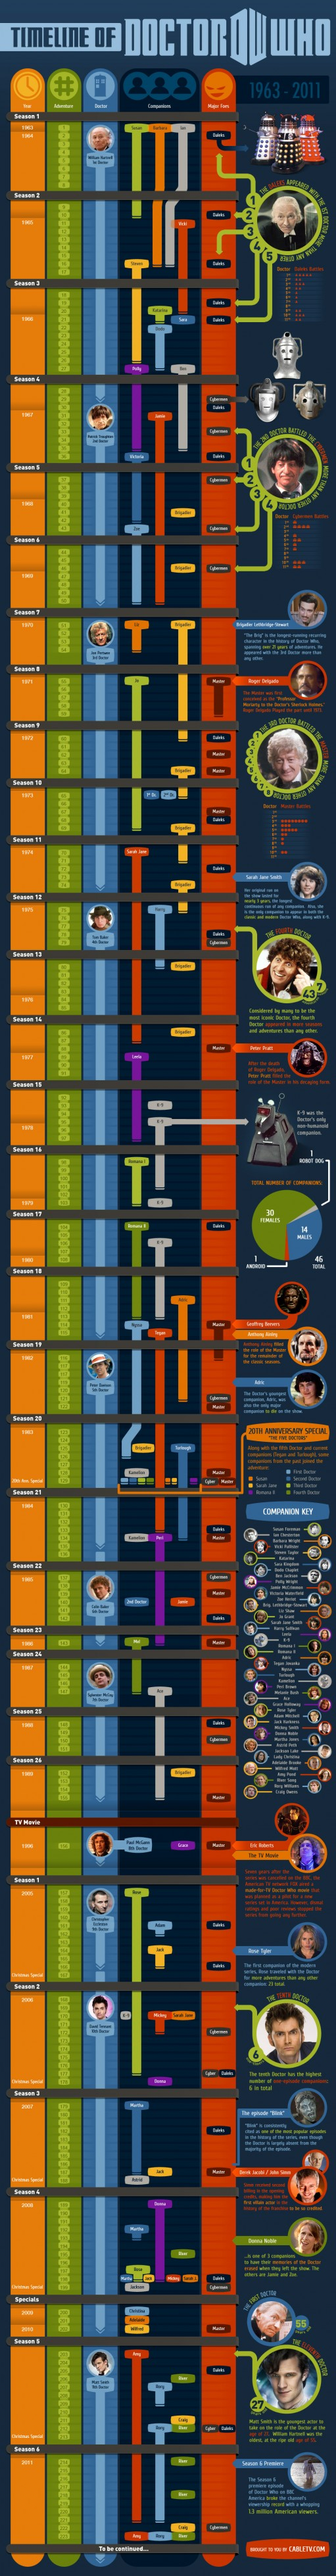 Doctor Who Timeline Infographic